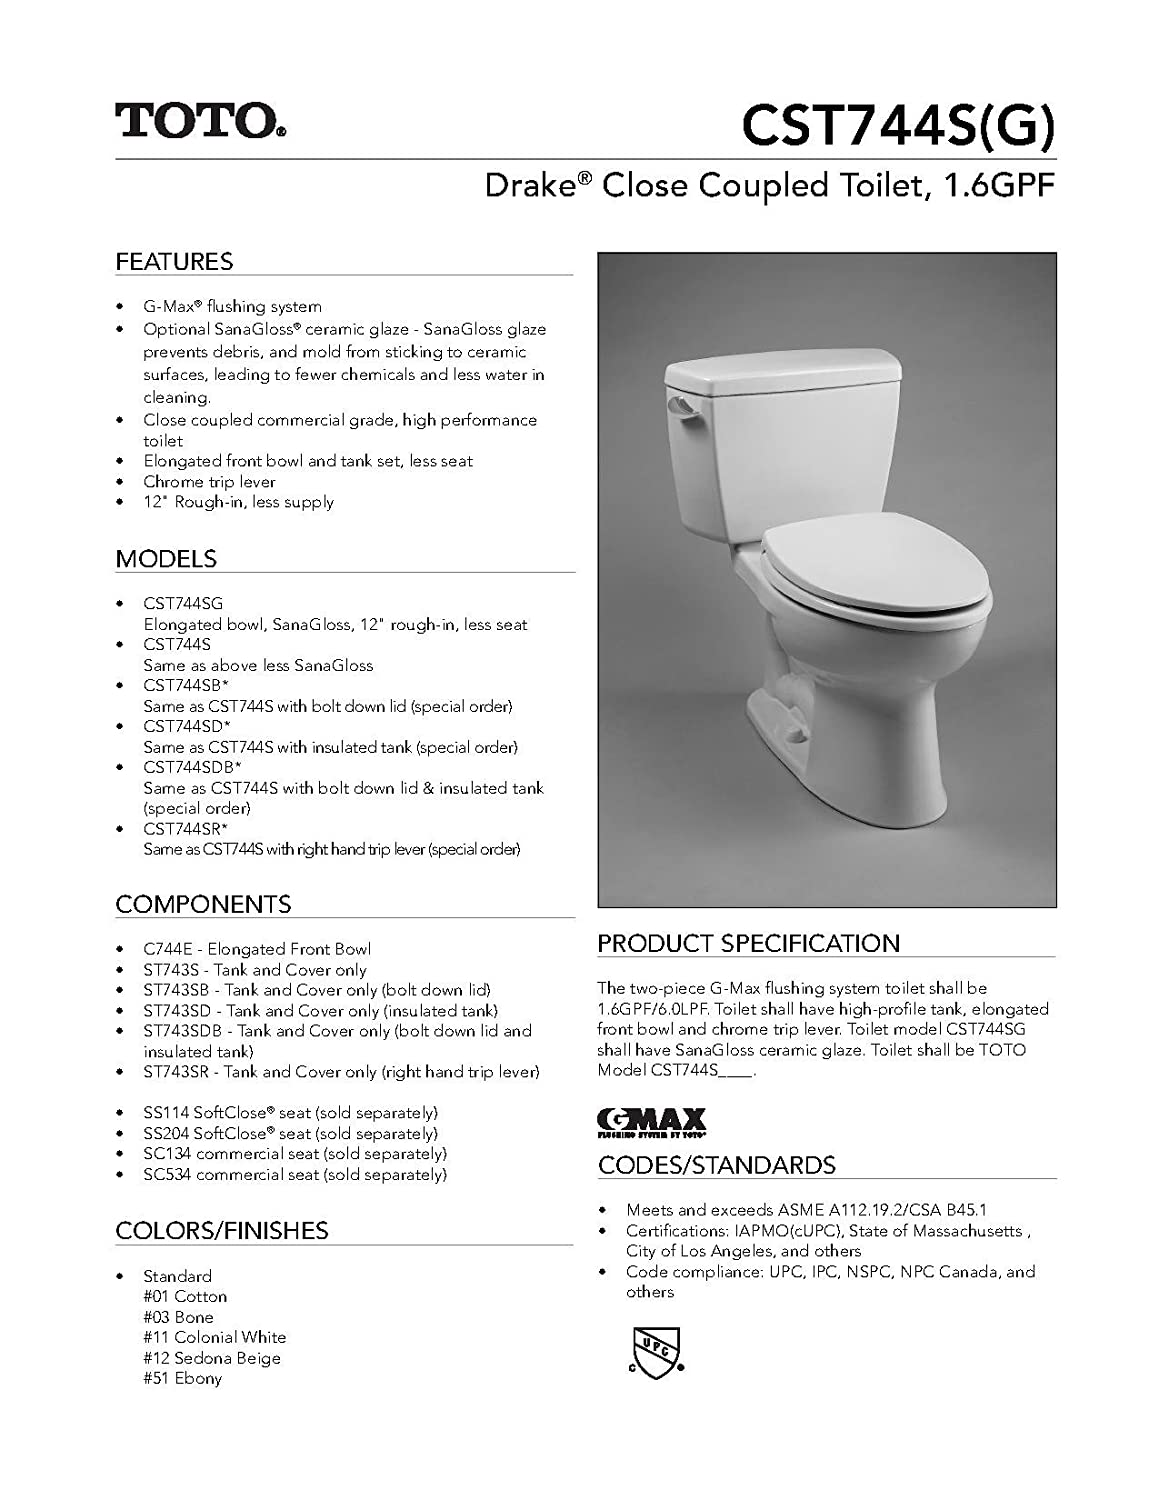 Amazon.com : Toto CST744SD-01 Drake® Toilet Bowl, 1.6 GPF with ...